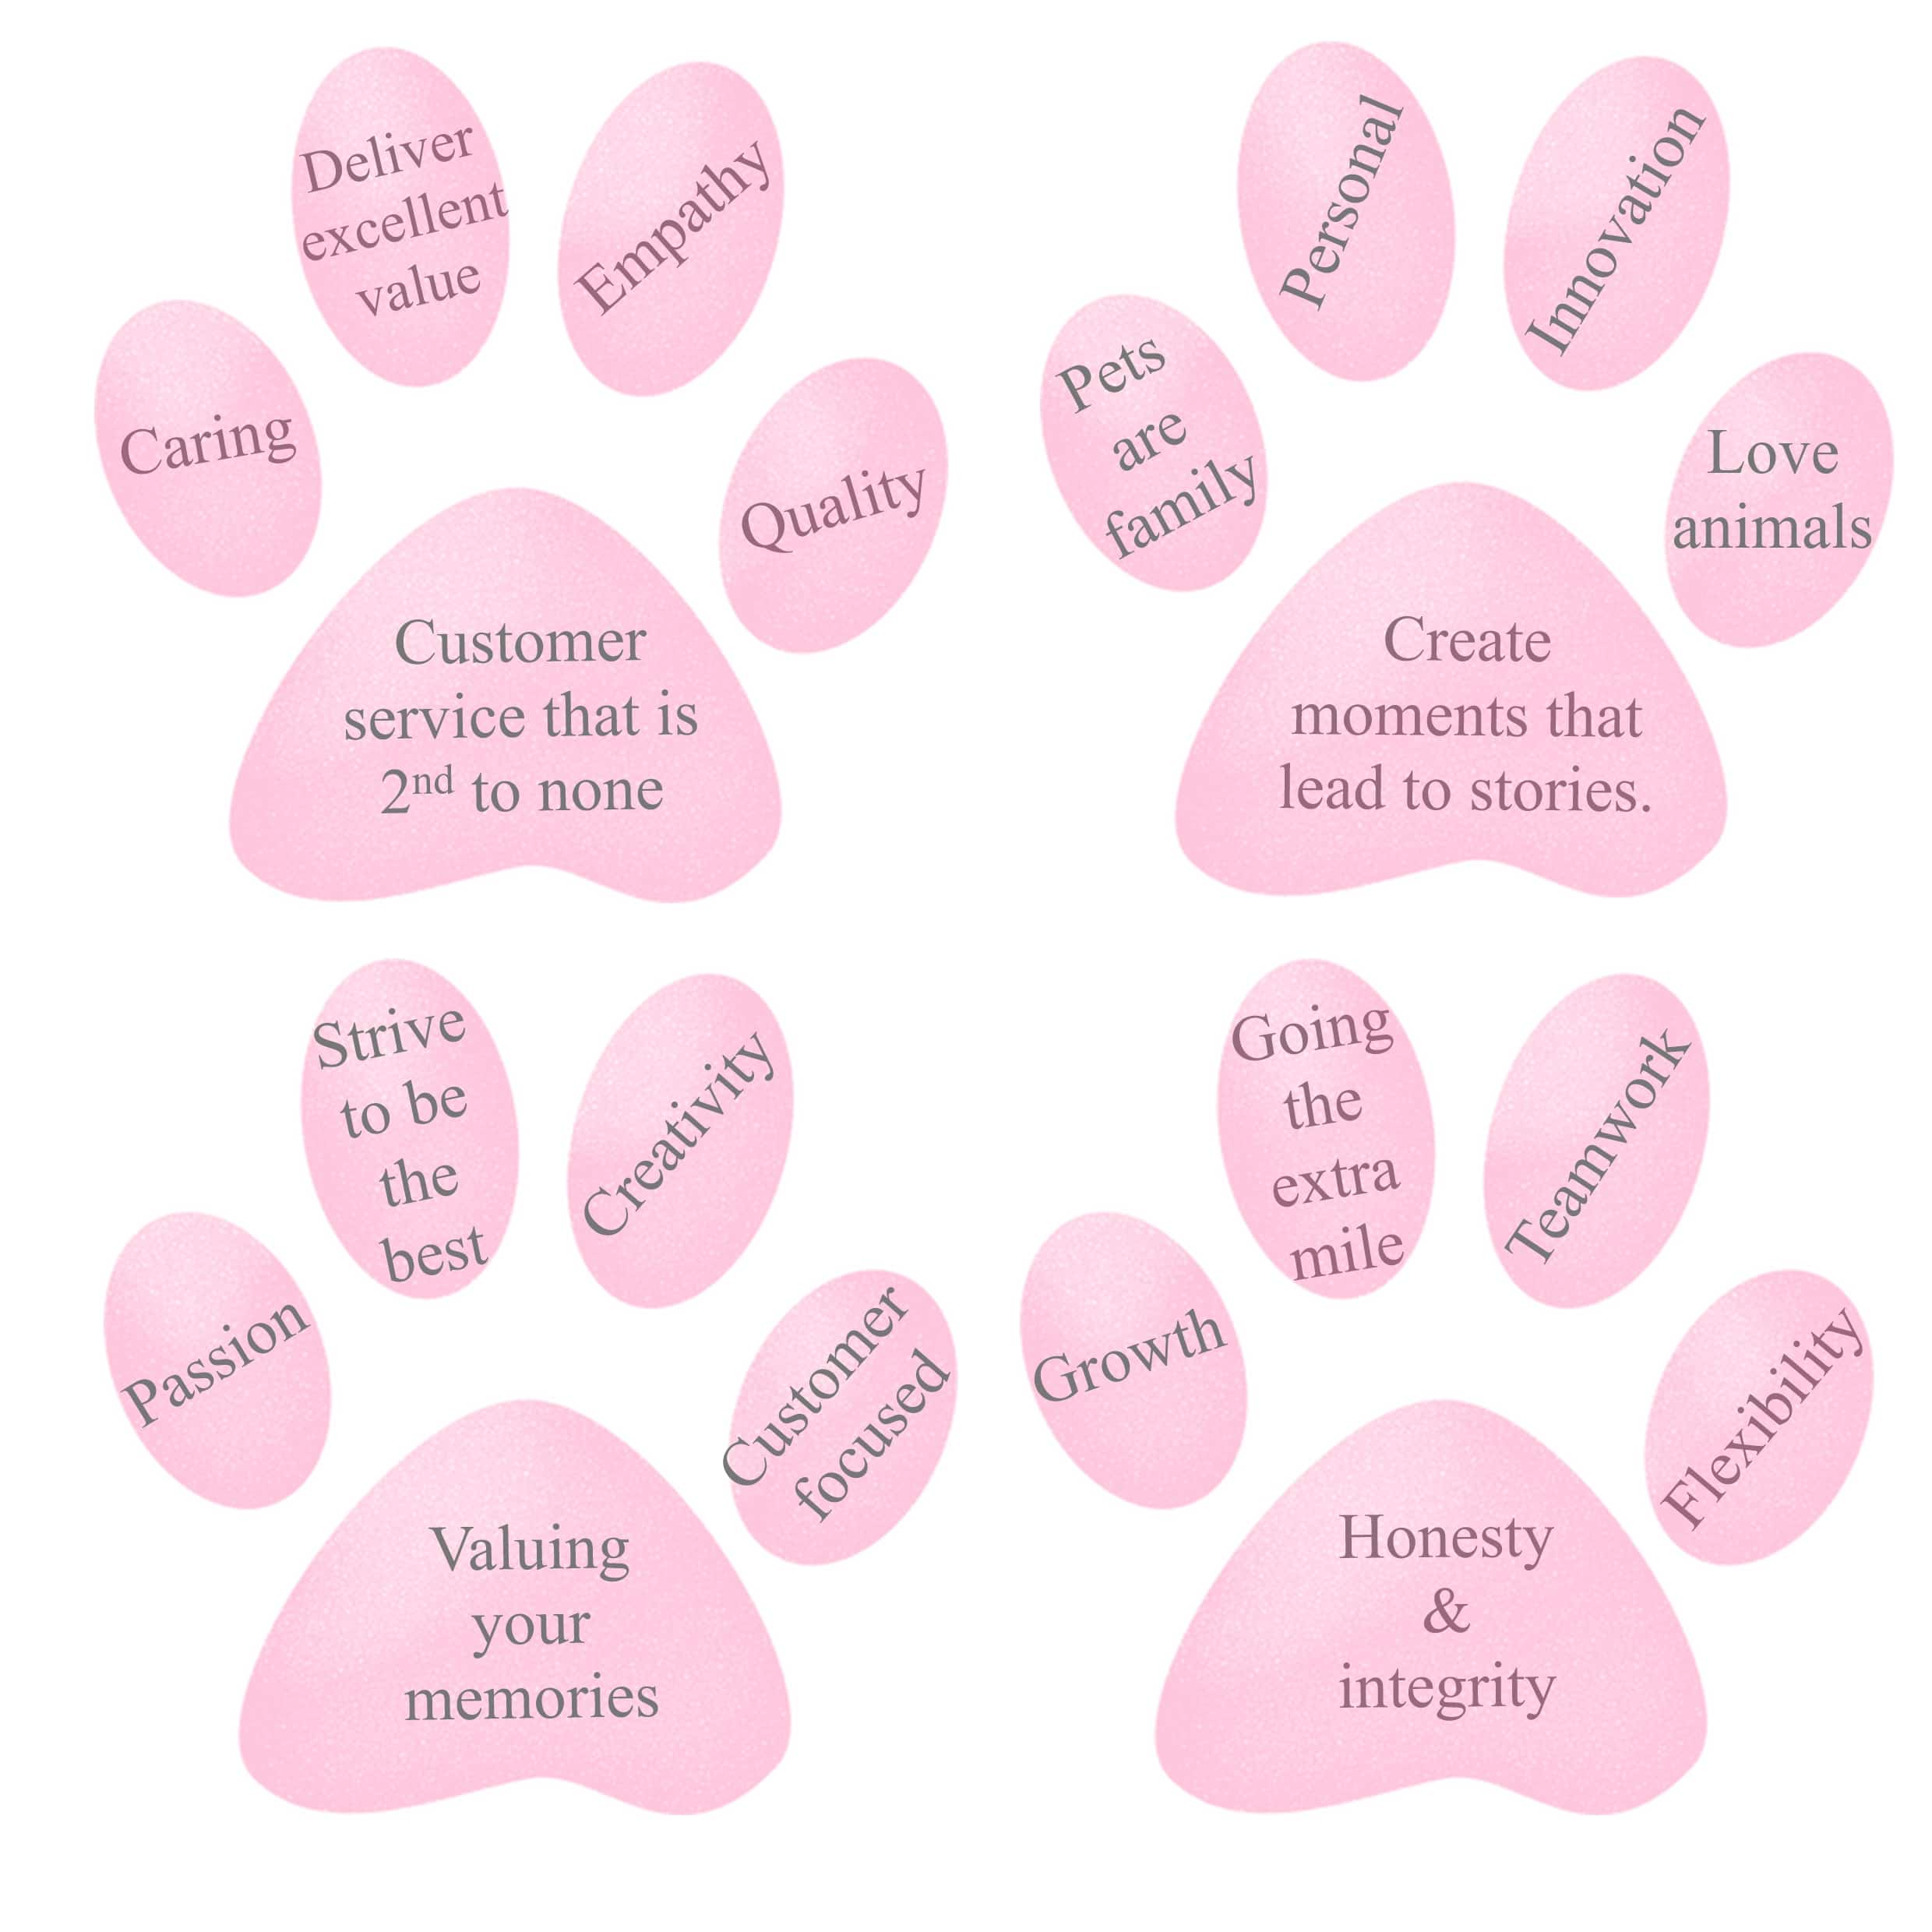 Cheeky Little Prints Company Values - Gifts for Pets